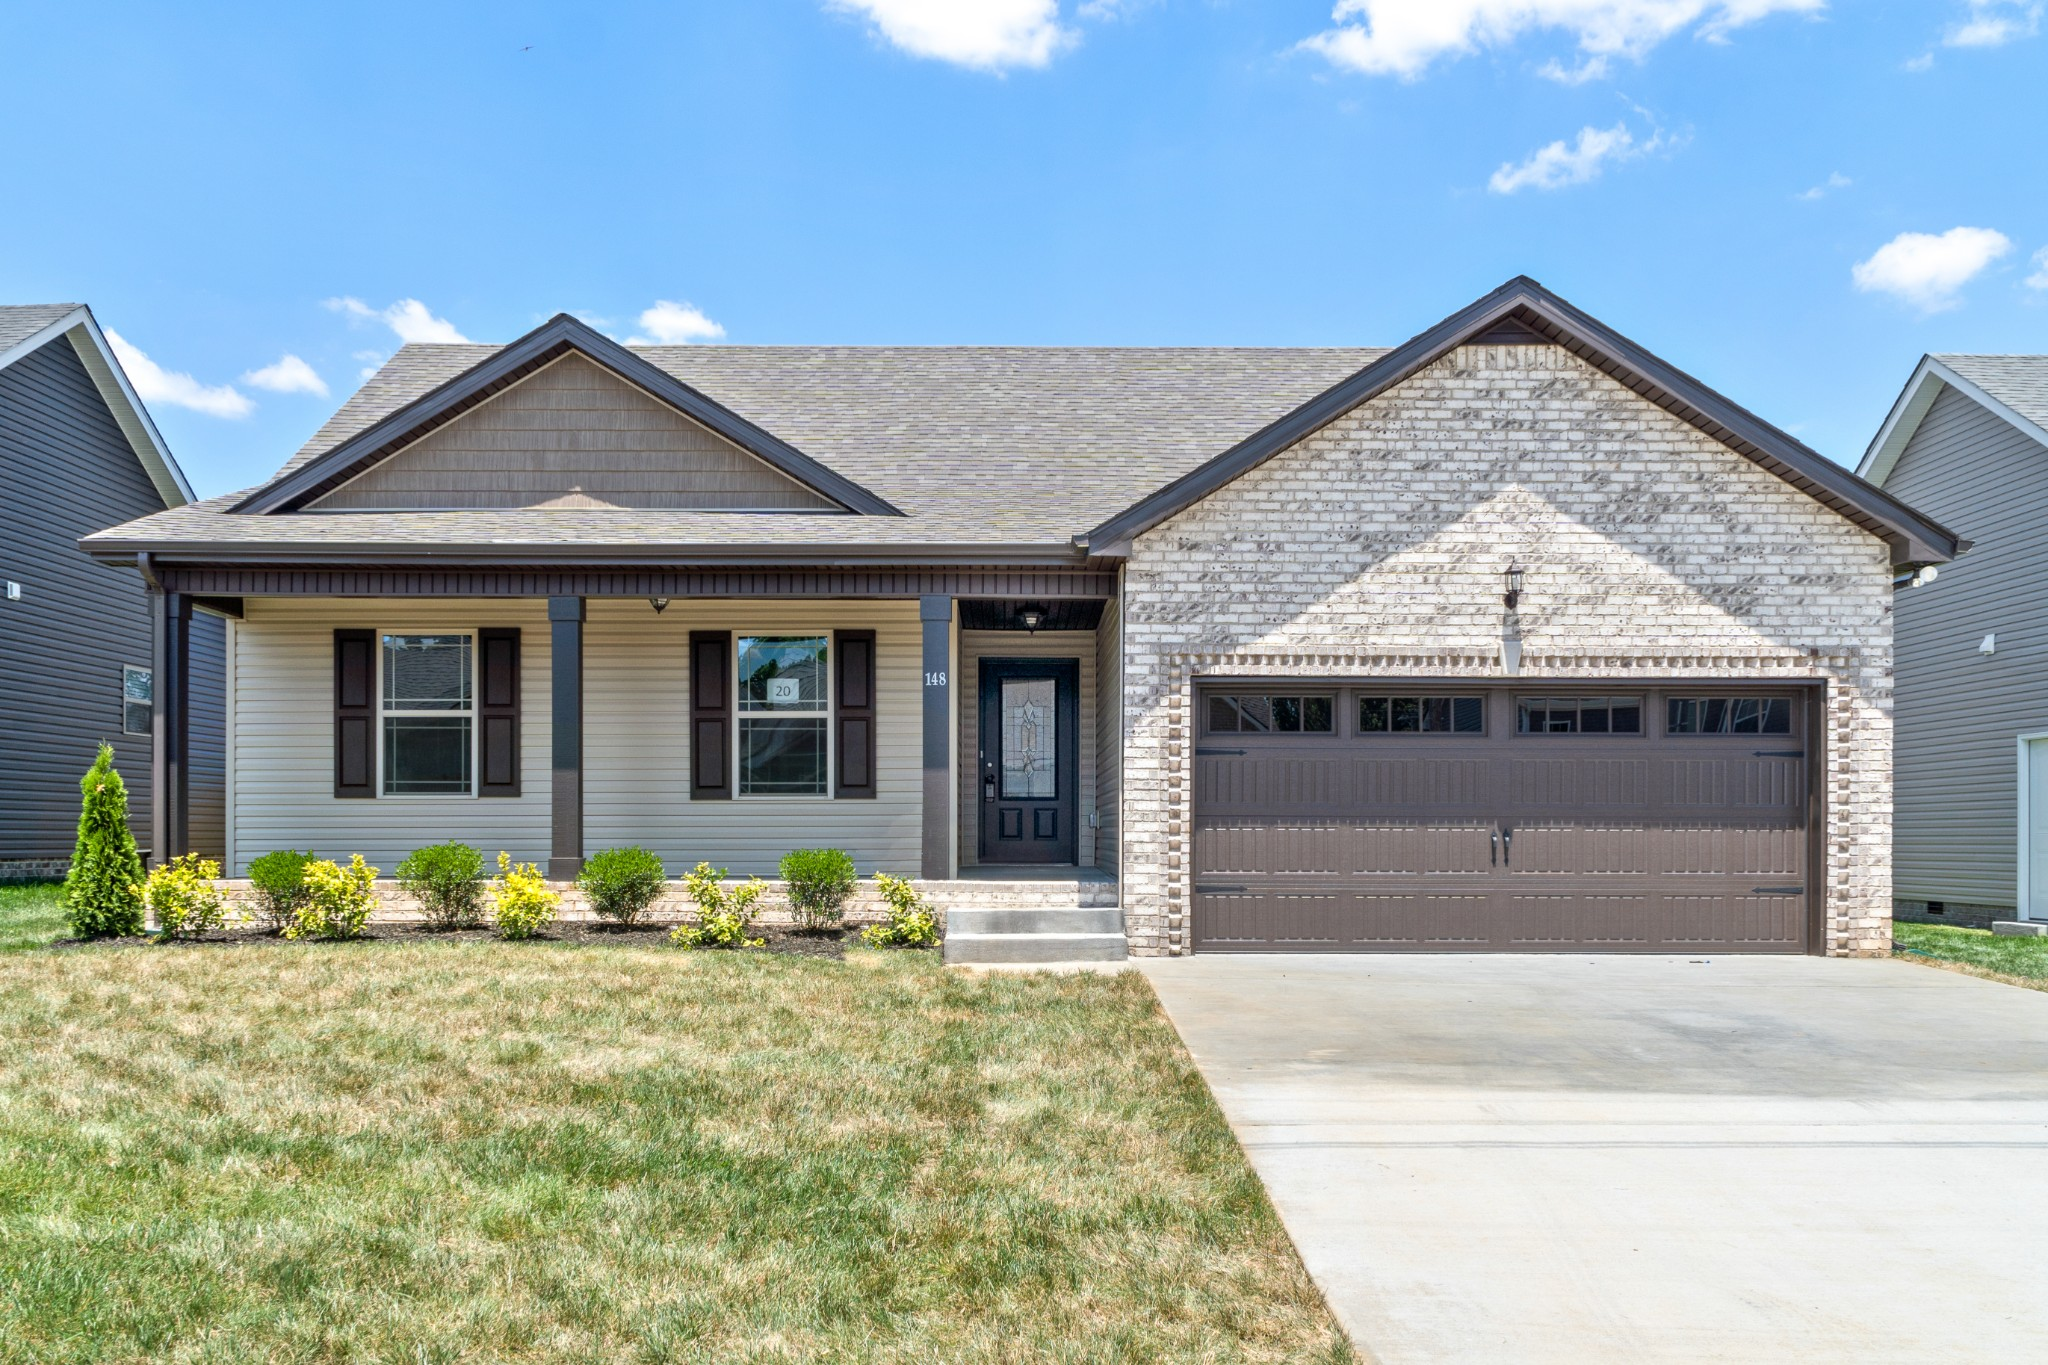 20 Rose Edd, Oak Grove, KY 42262 - Oak Grove, KY real estate listing